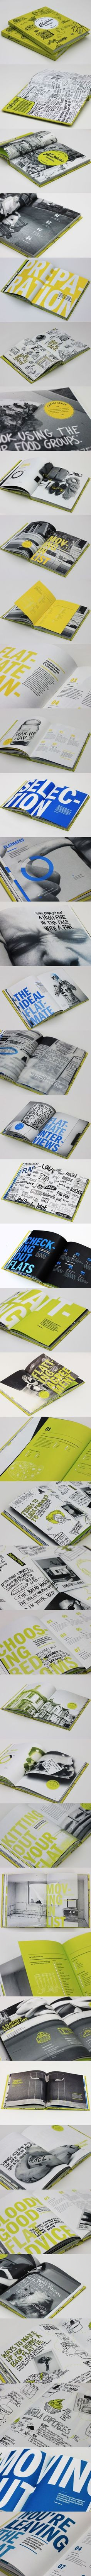 Flatmates Handbook in Layouts/Editorial